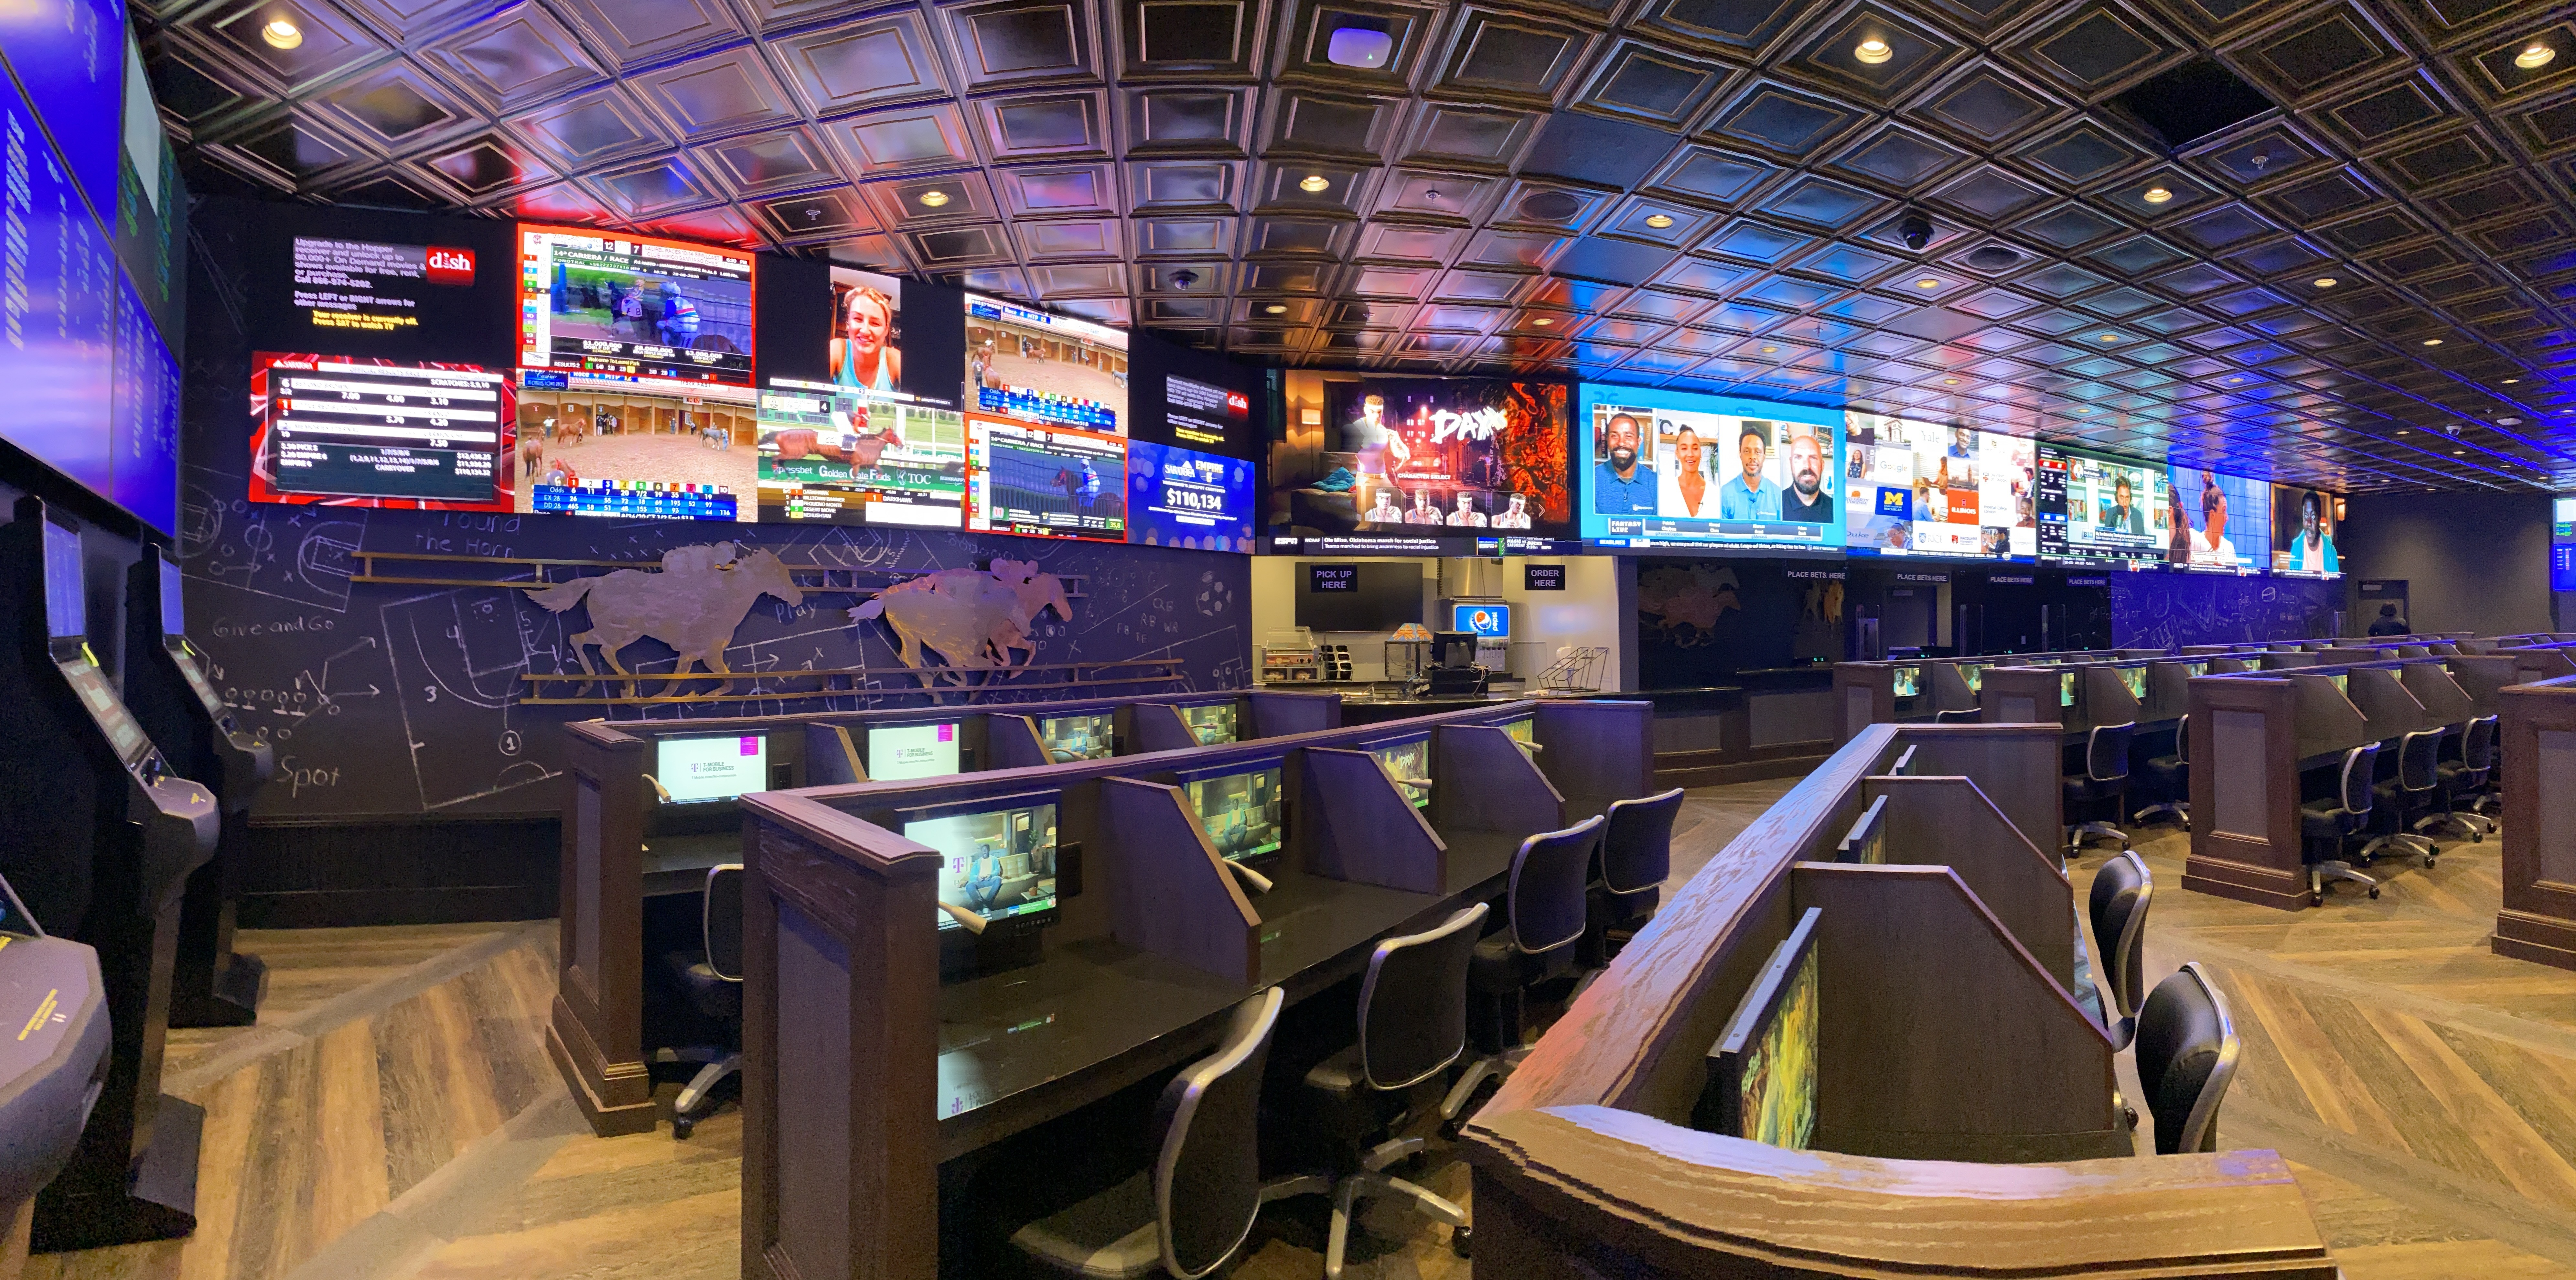 A wall of video screens with individual desk areas